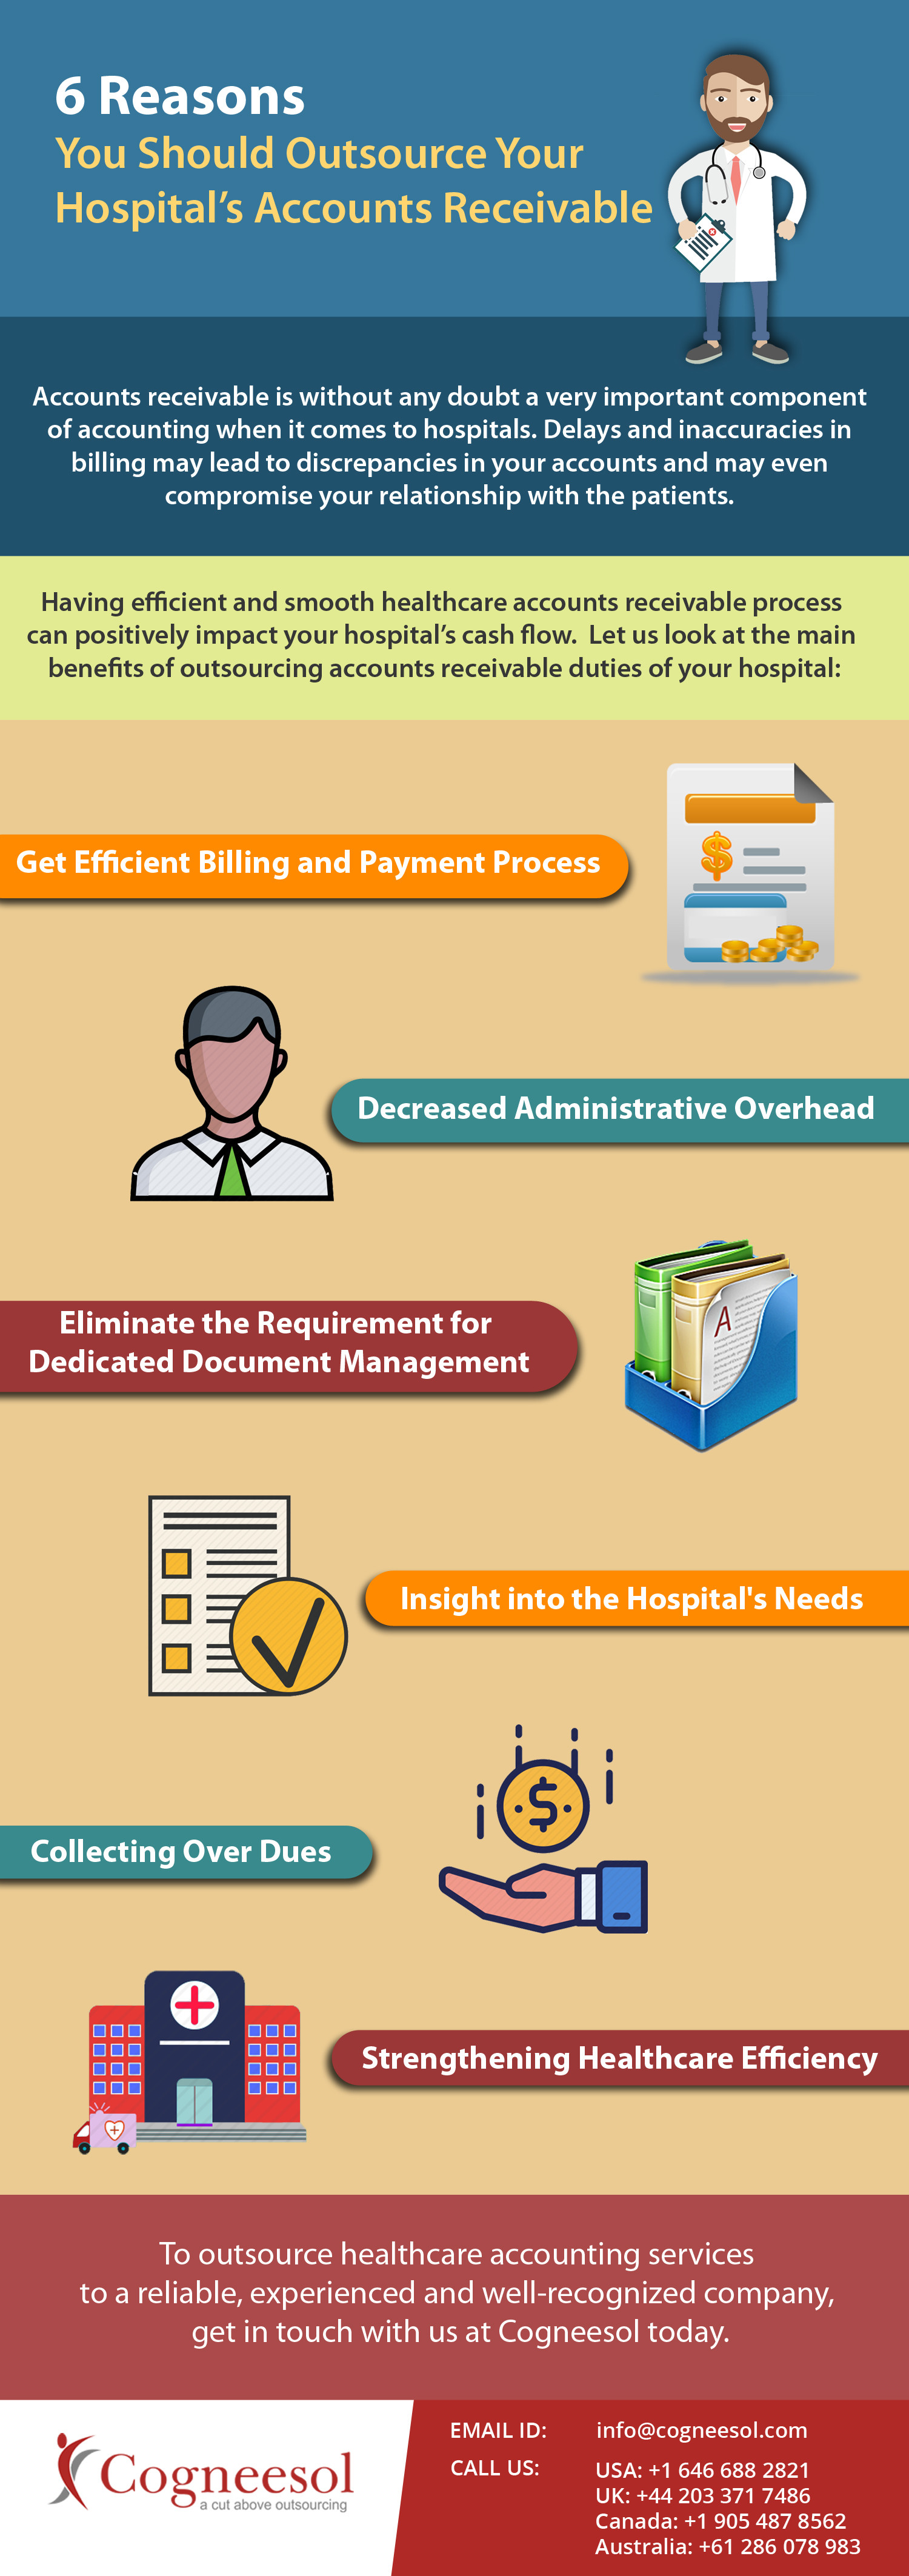 Hospital's Account Receivable: Why You Should Outsource ? Infographic